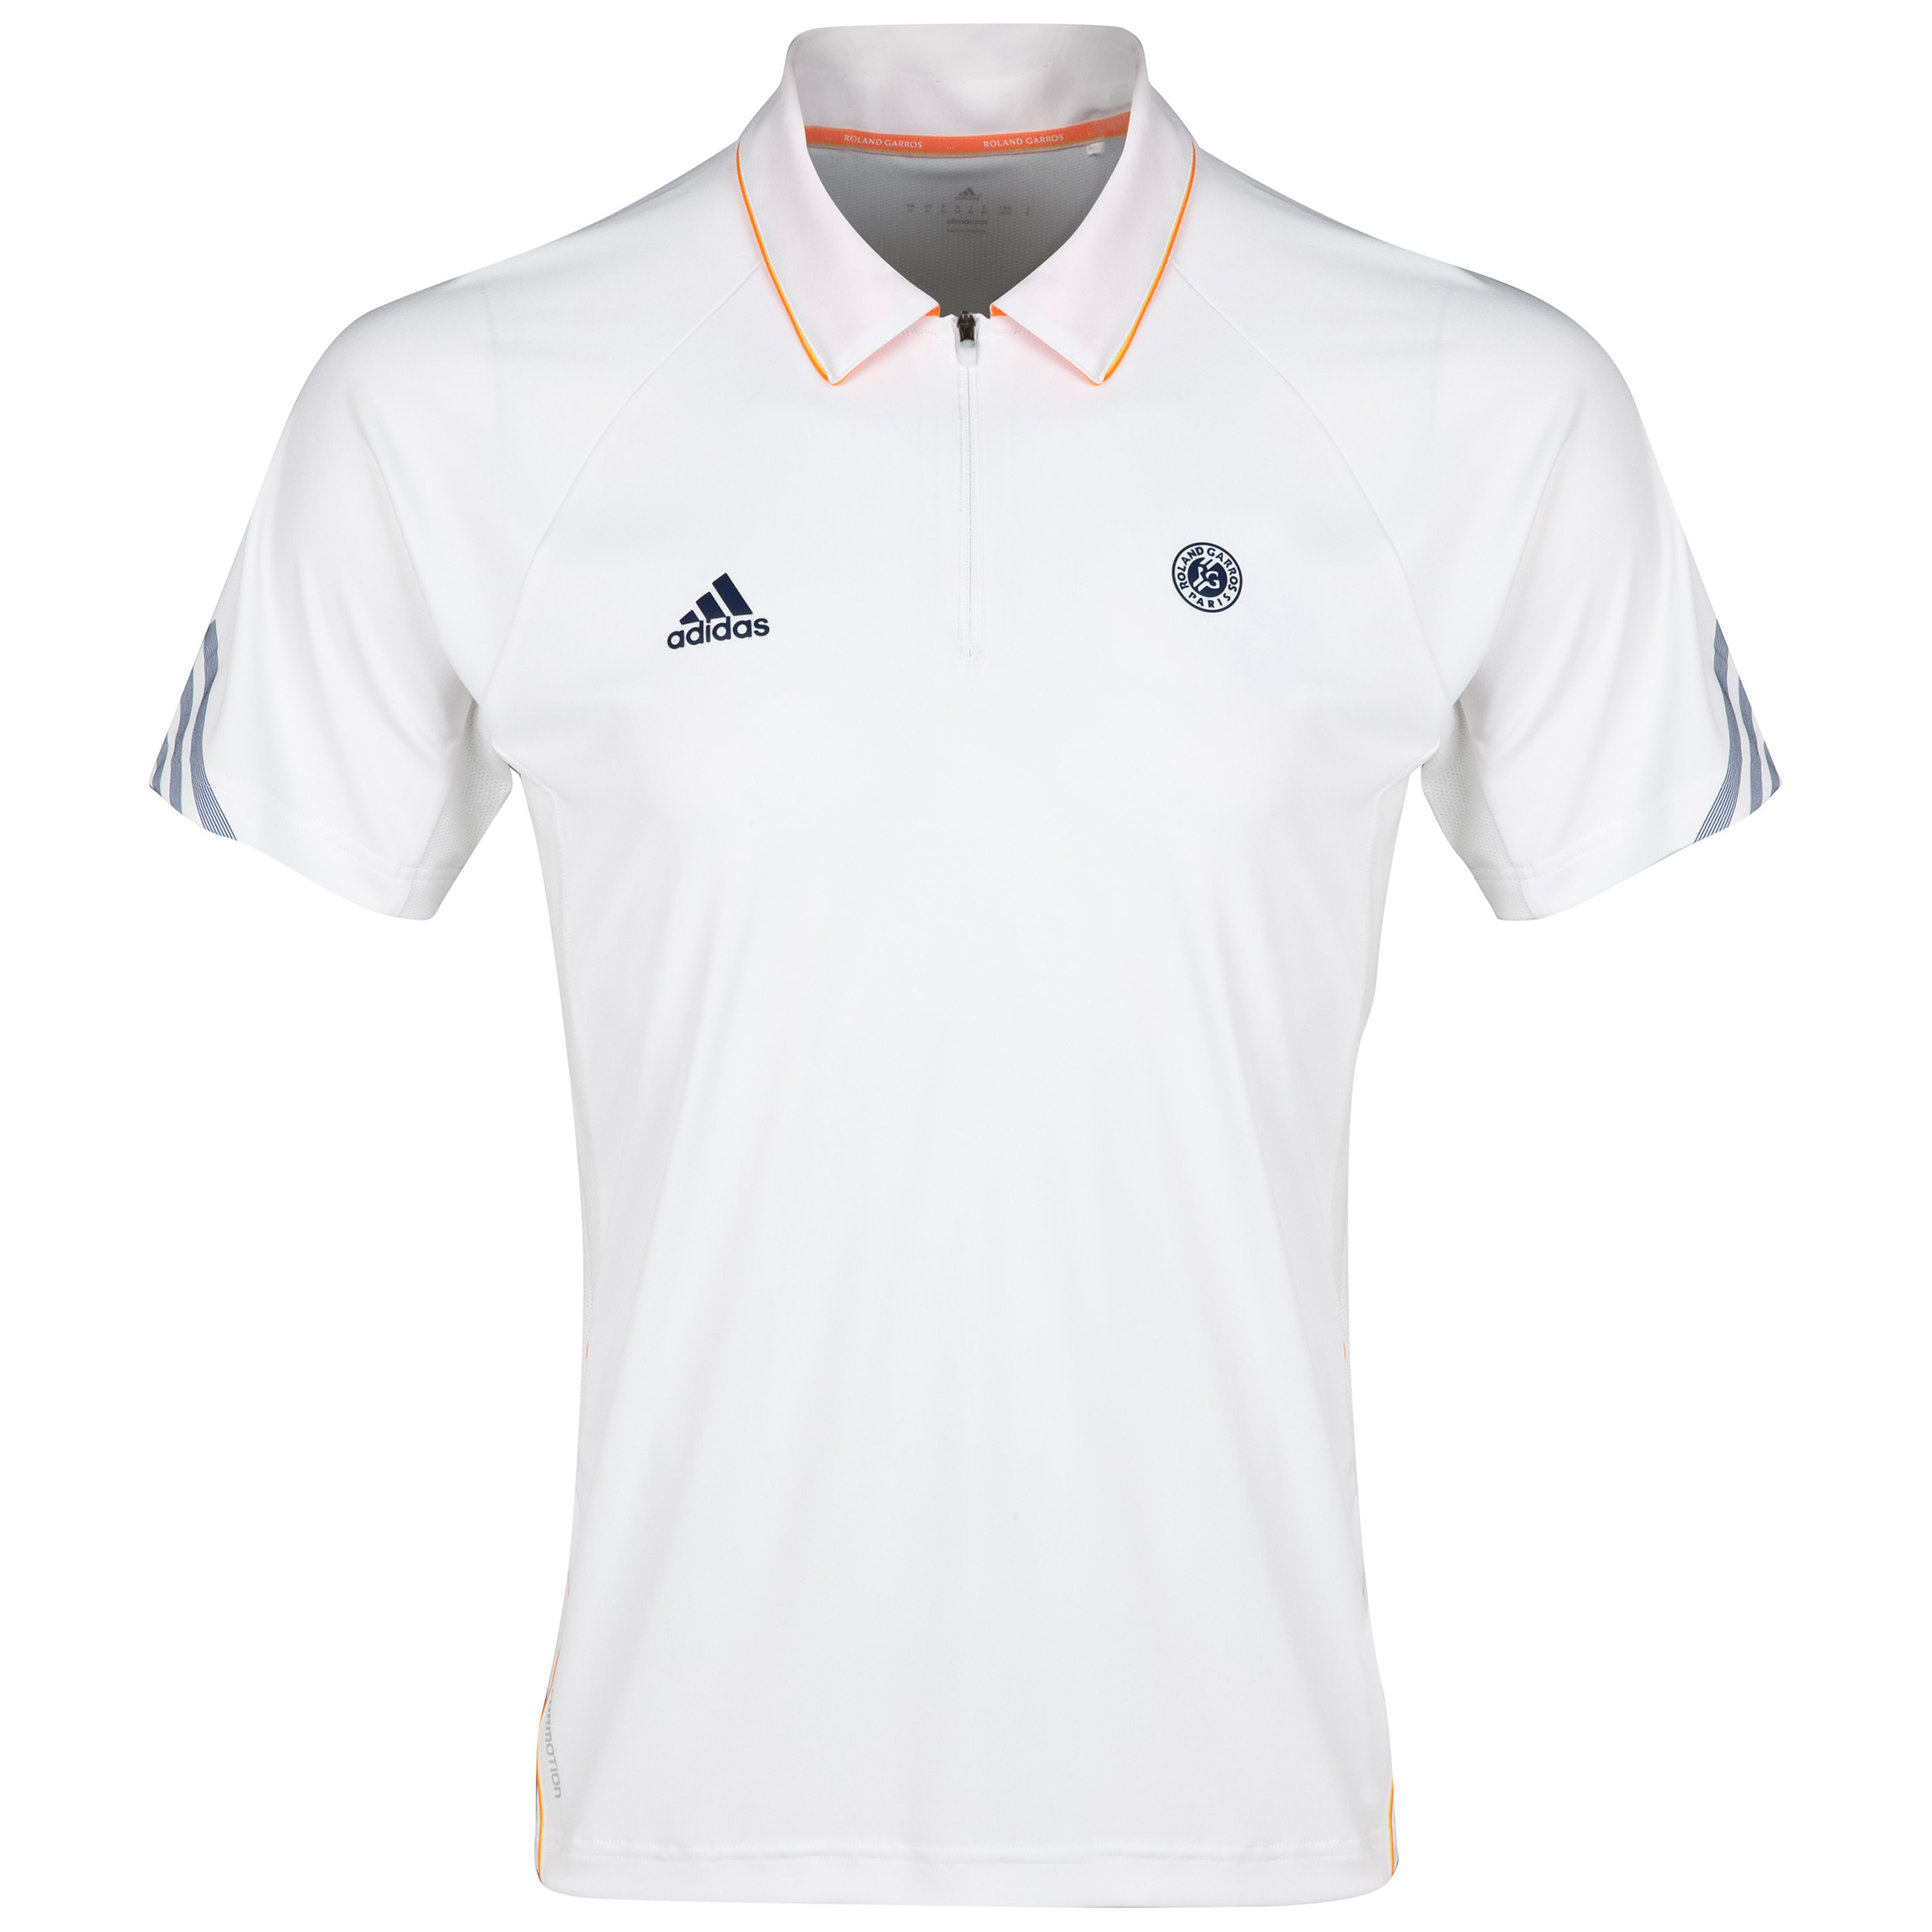 Roland-Garros Adidas on court Polo White